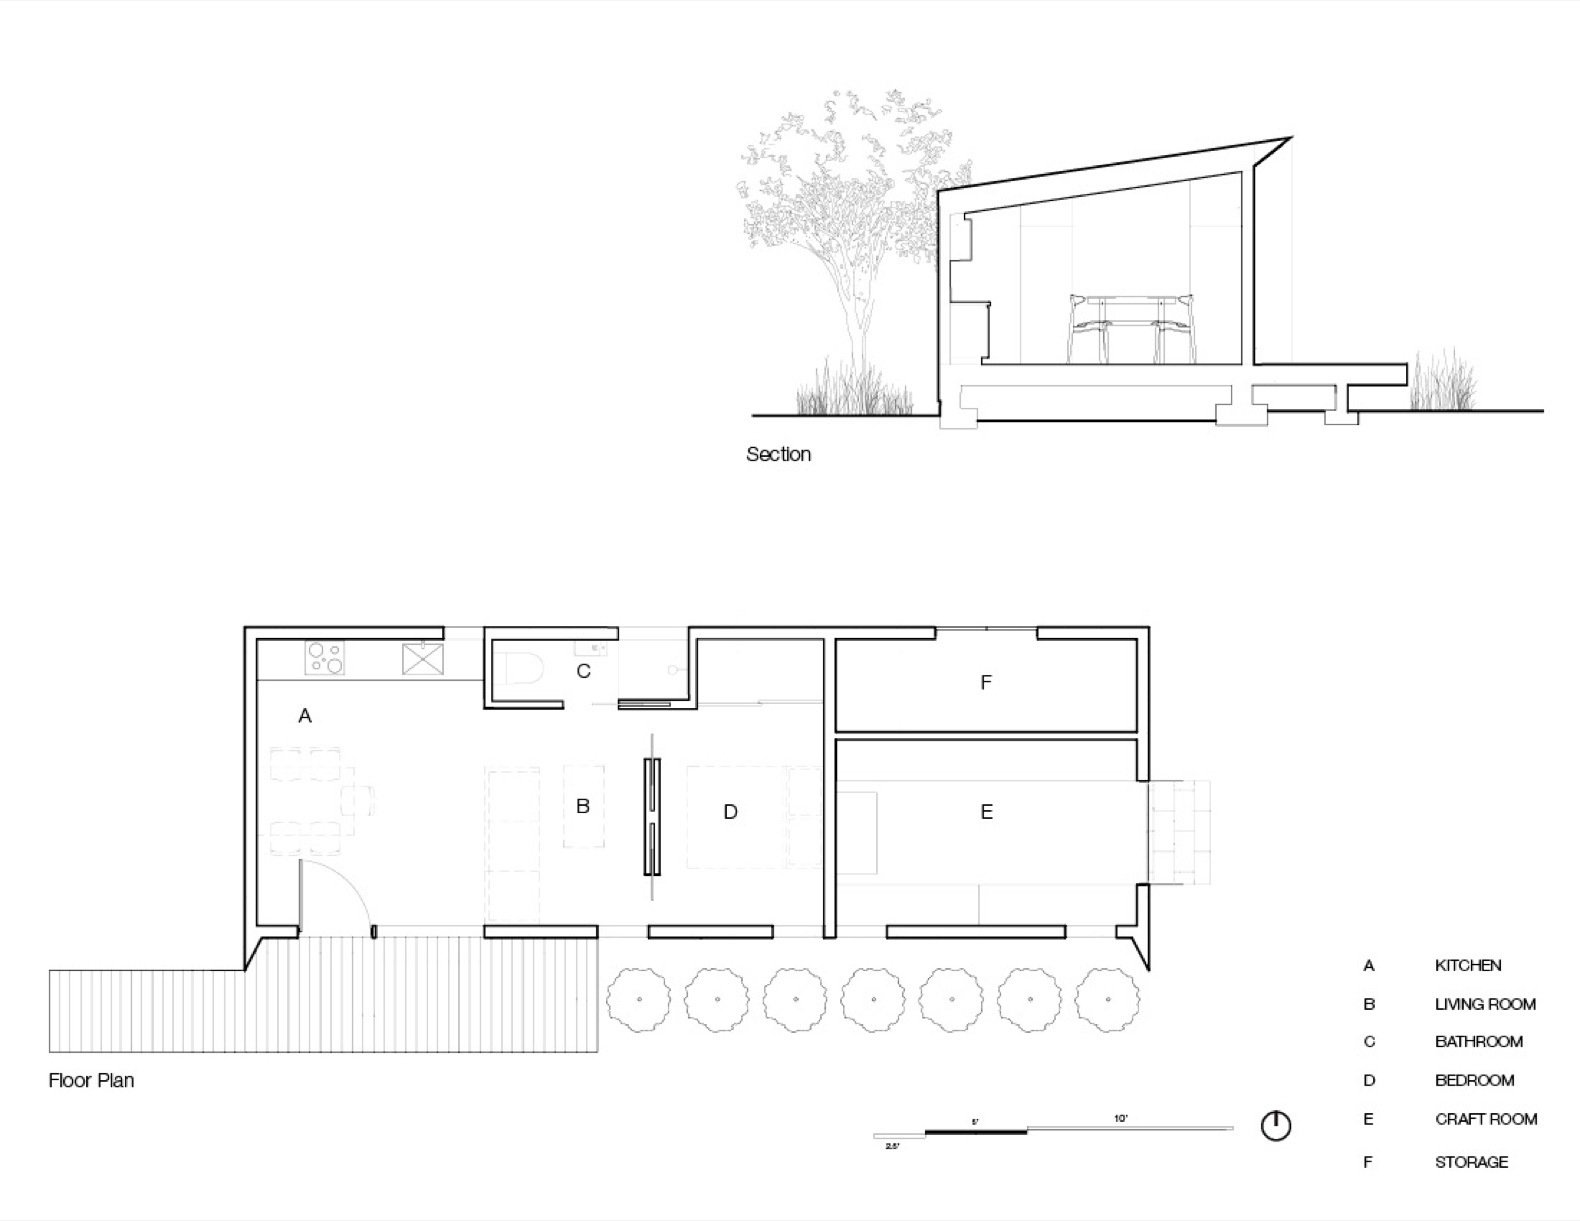 Solar Studio floor plan and section